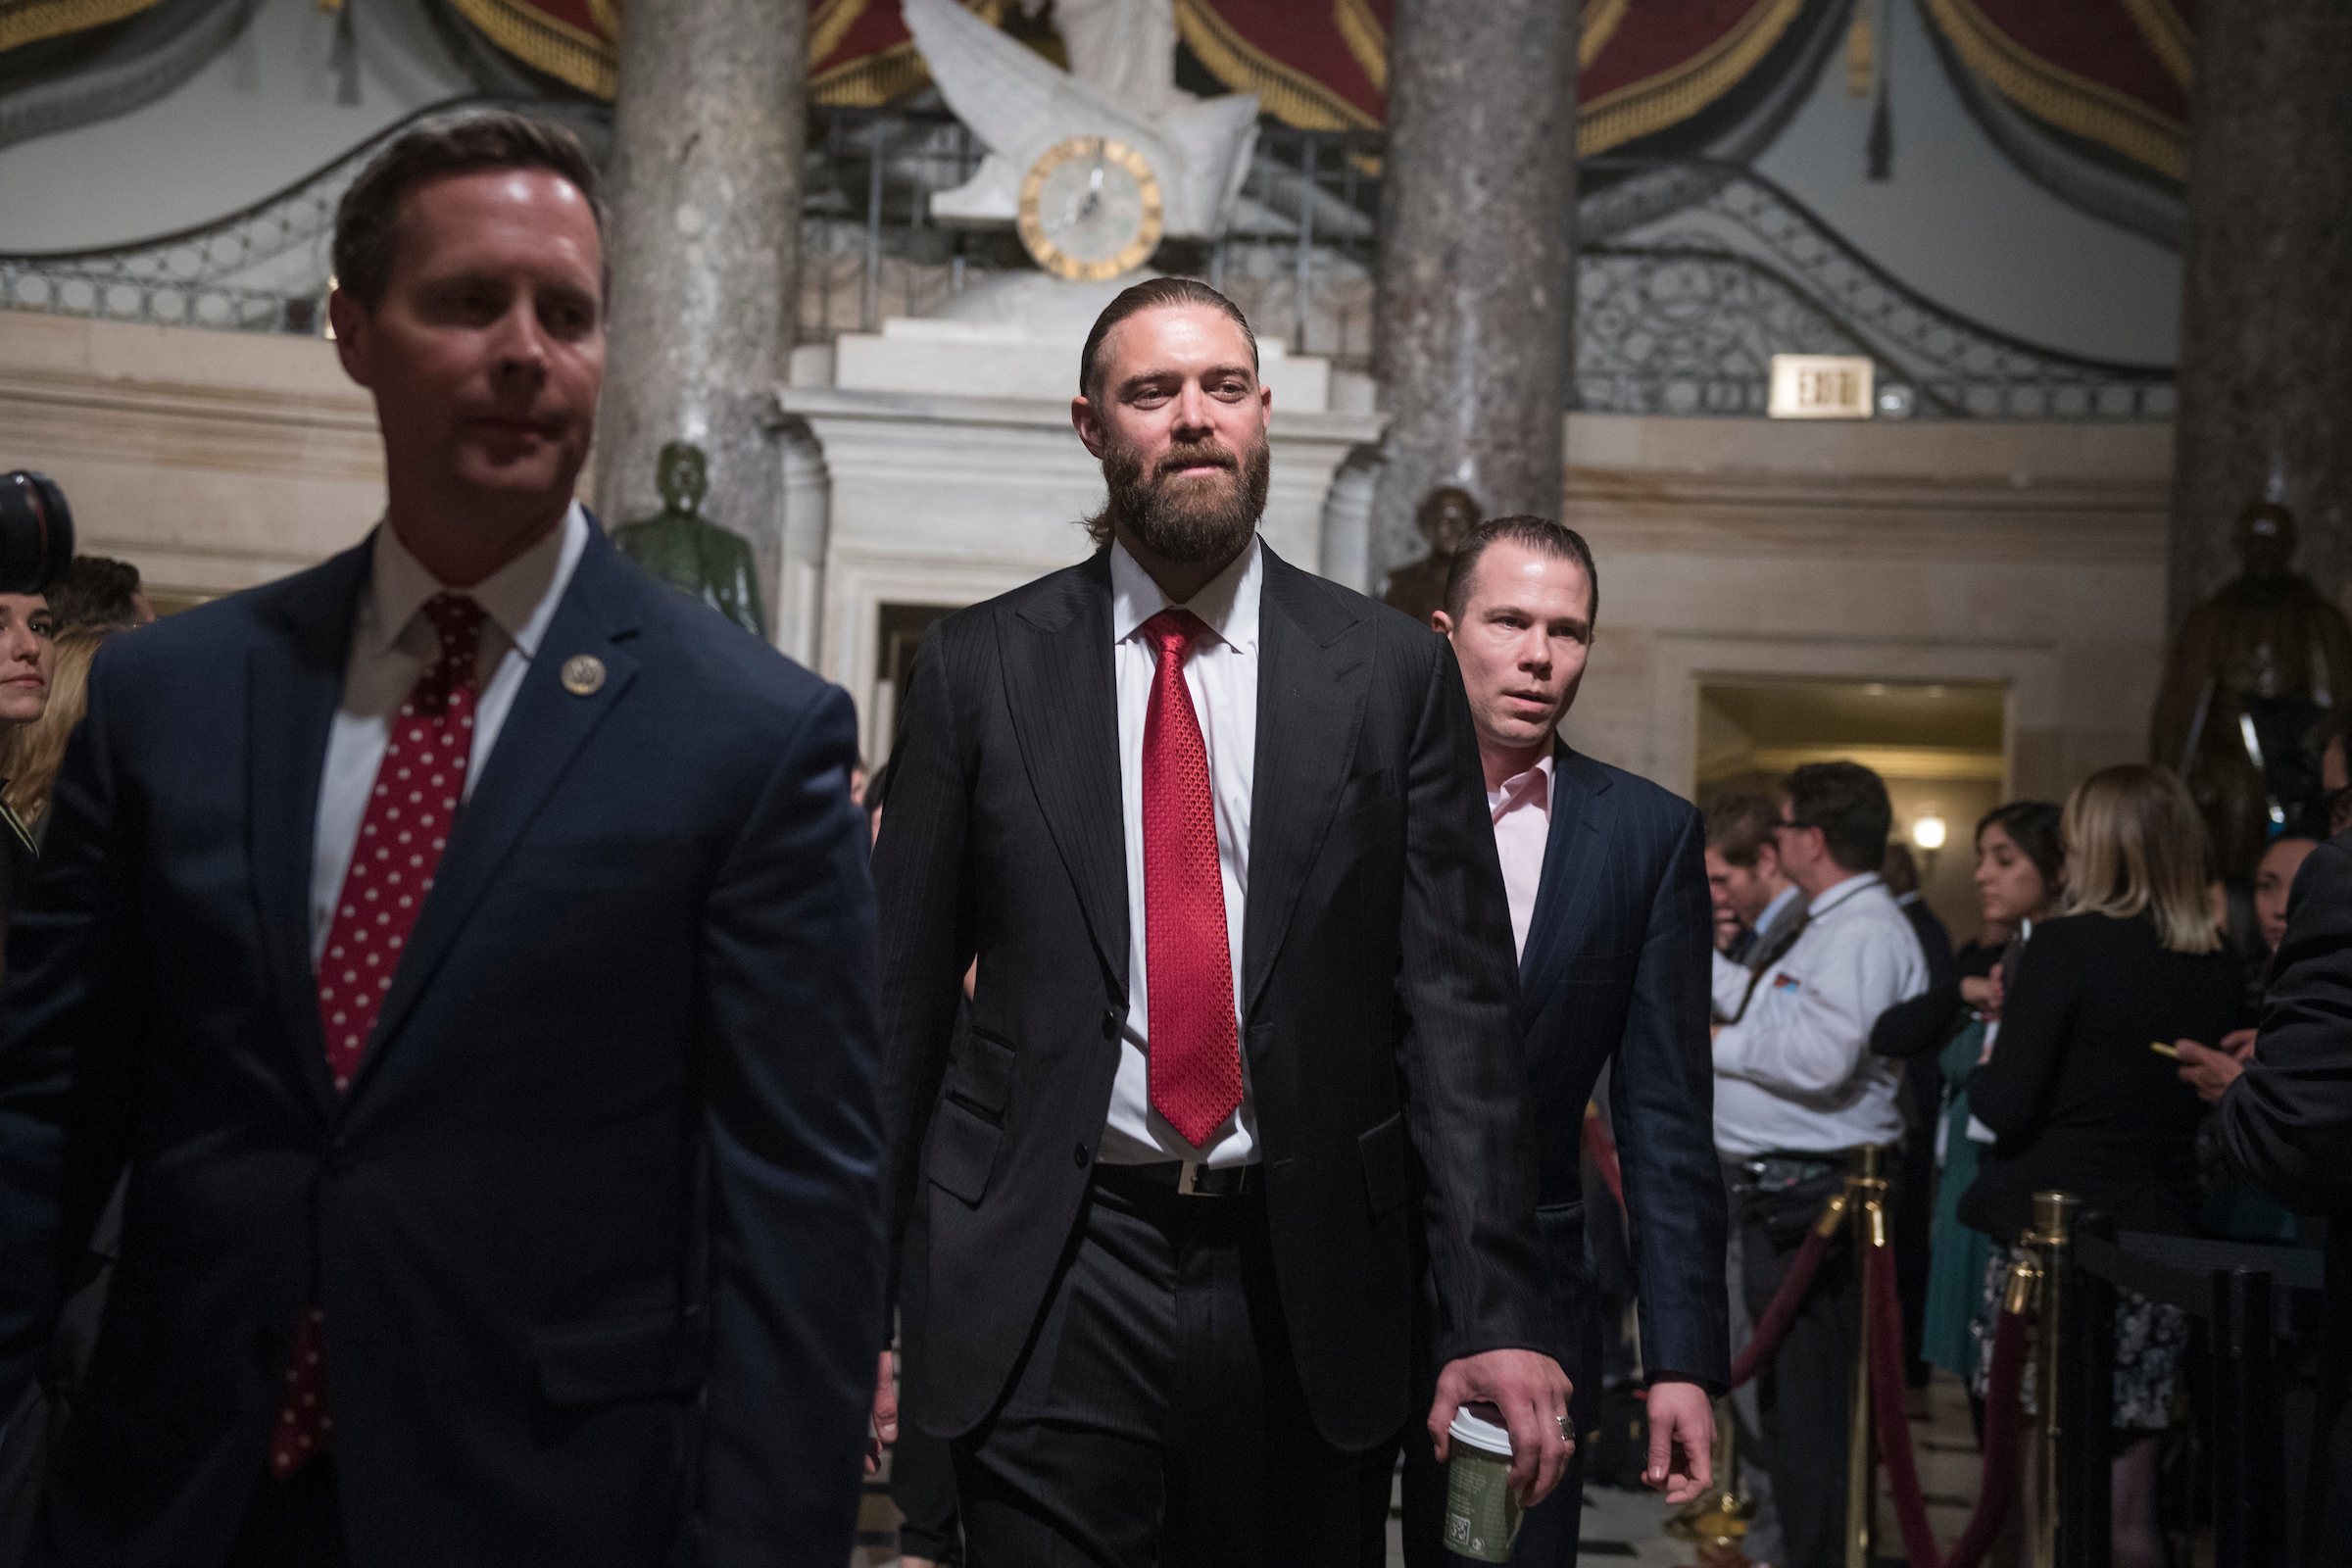 UNITED STATES - JANUARY 30: Former Washington National Jayson Werth, center, walks through Statuary Hall with his host Rep. Rodney Davis, R-Ill., left, before President Donald Trump's State of the Union address to a joint session of Congress in the House chamber on January 30, 2018. (Photo By Tom Williams/CQ Roll Call)